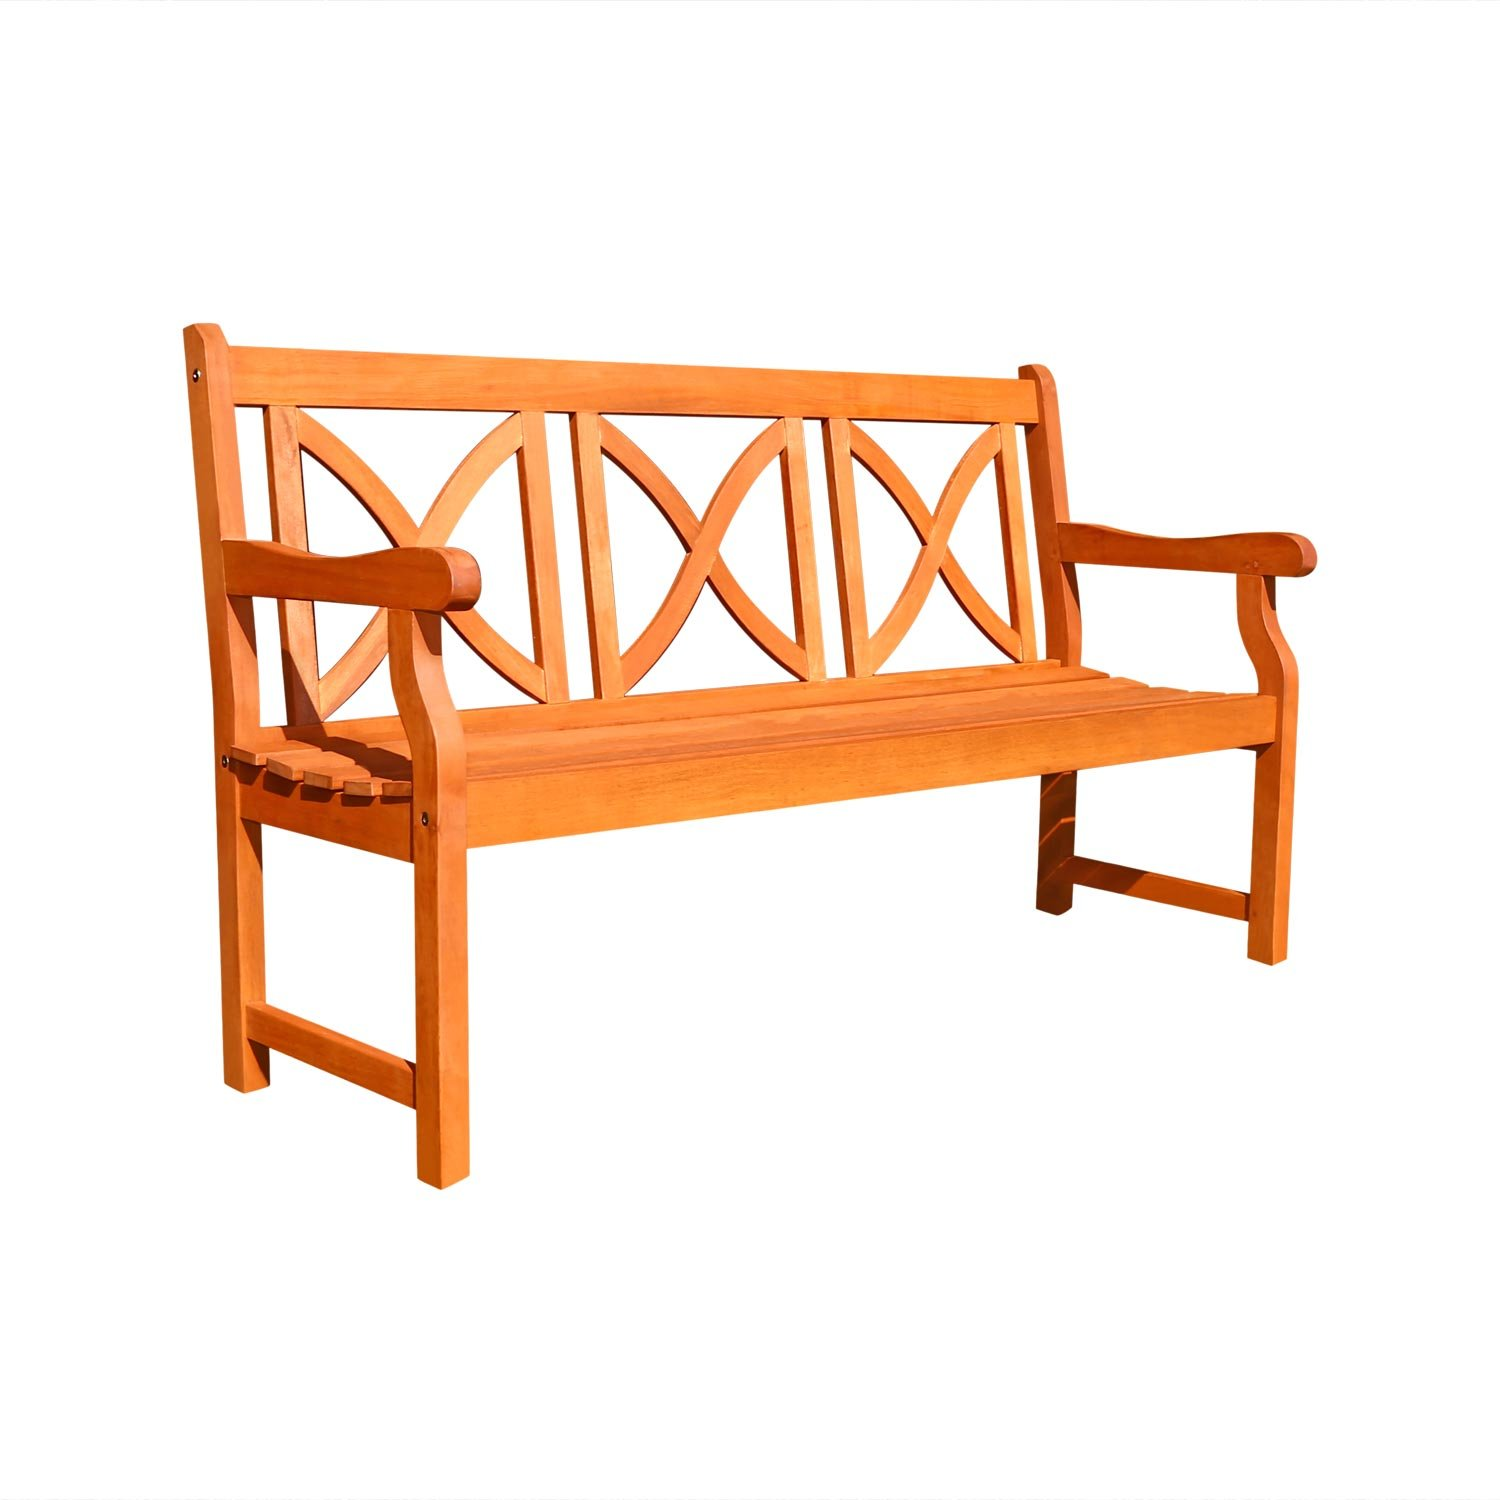 frame best garden bcp patio yard furniture steel park ip products chair choice outdoor bench porch walmart com